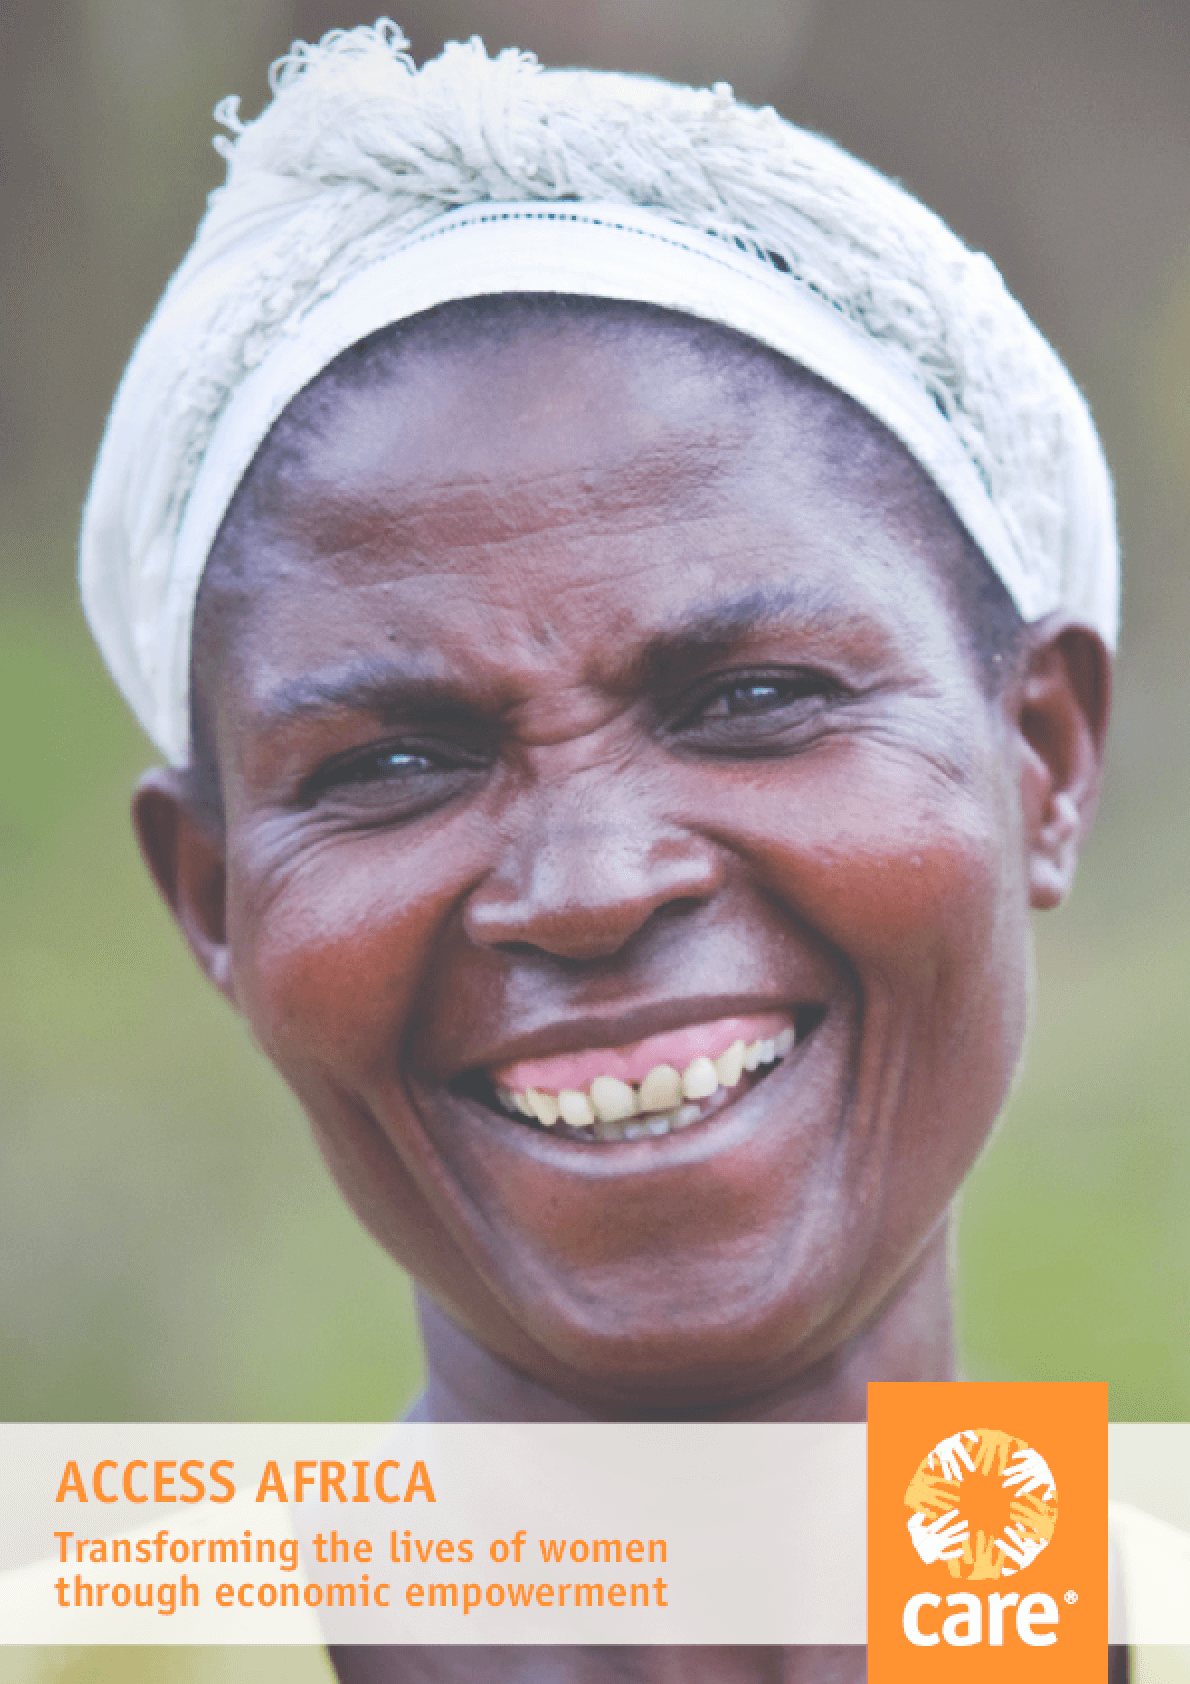 Access Africa: Transforming the Lives of Women Through Economic Empowerment